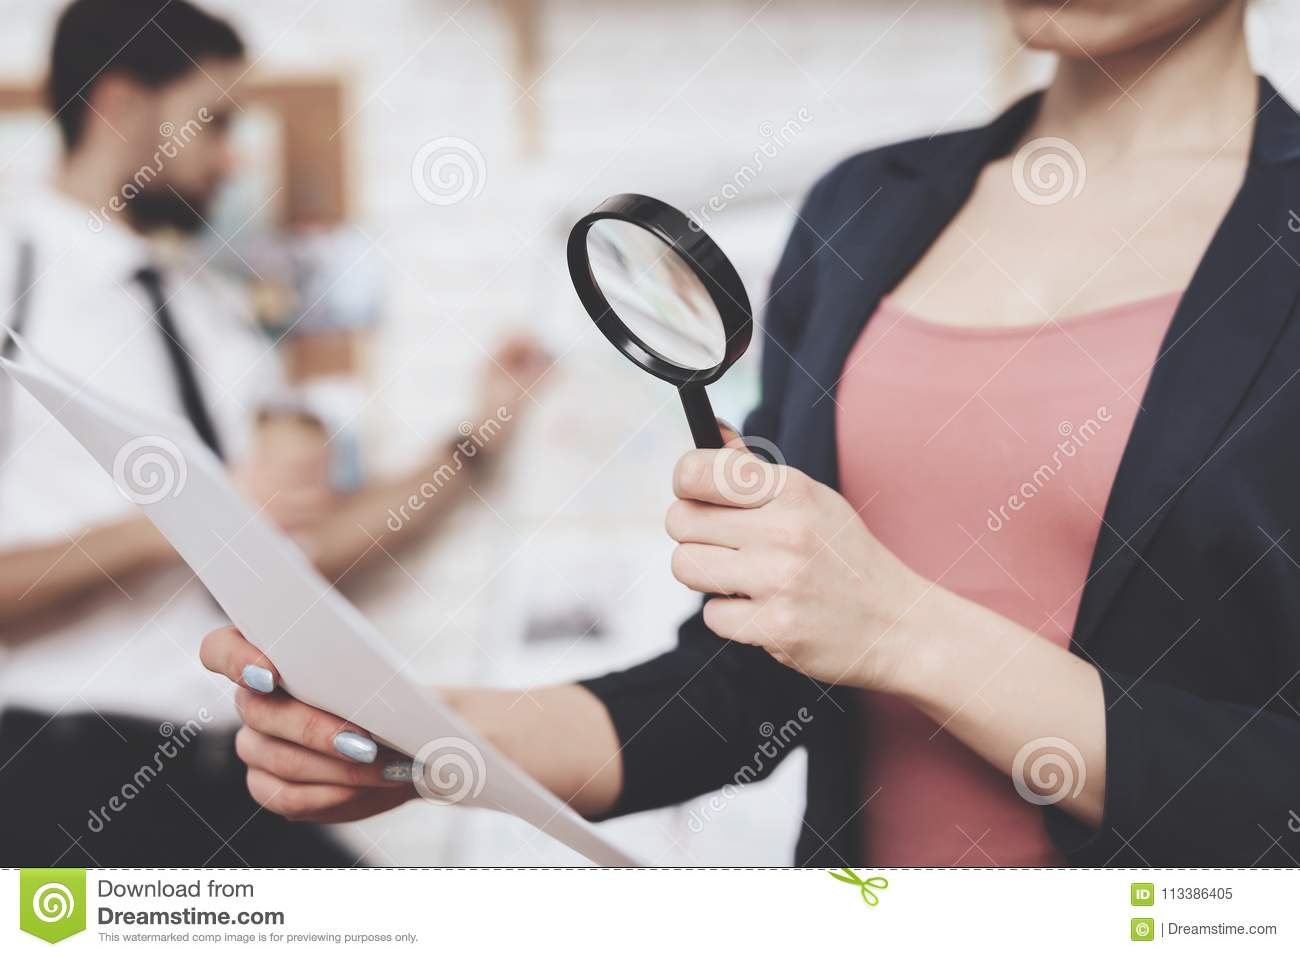 Private detective agency. Woman is posing with paper and magnifying glass, man is looking at clues map.